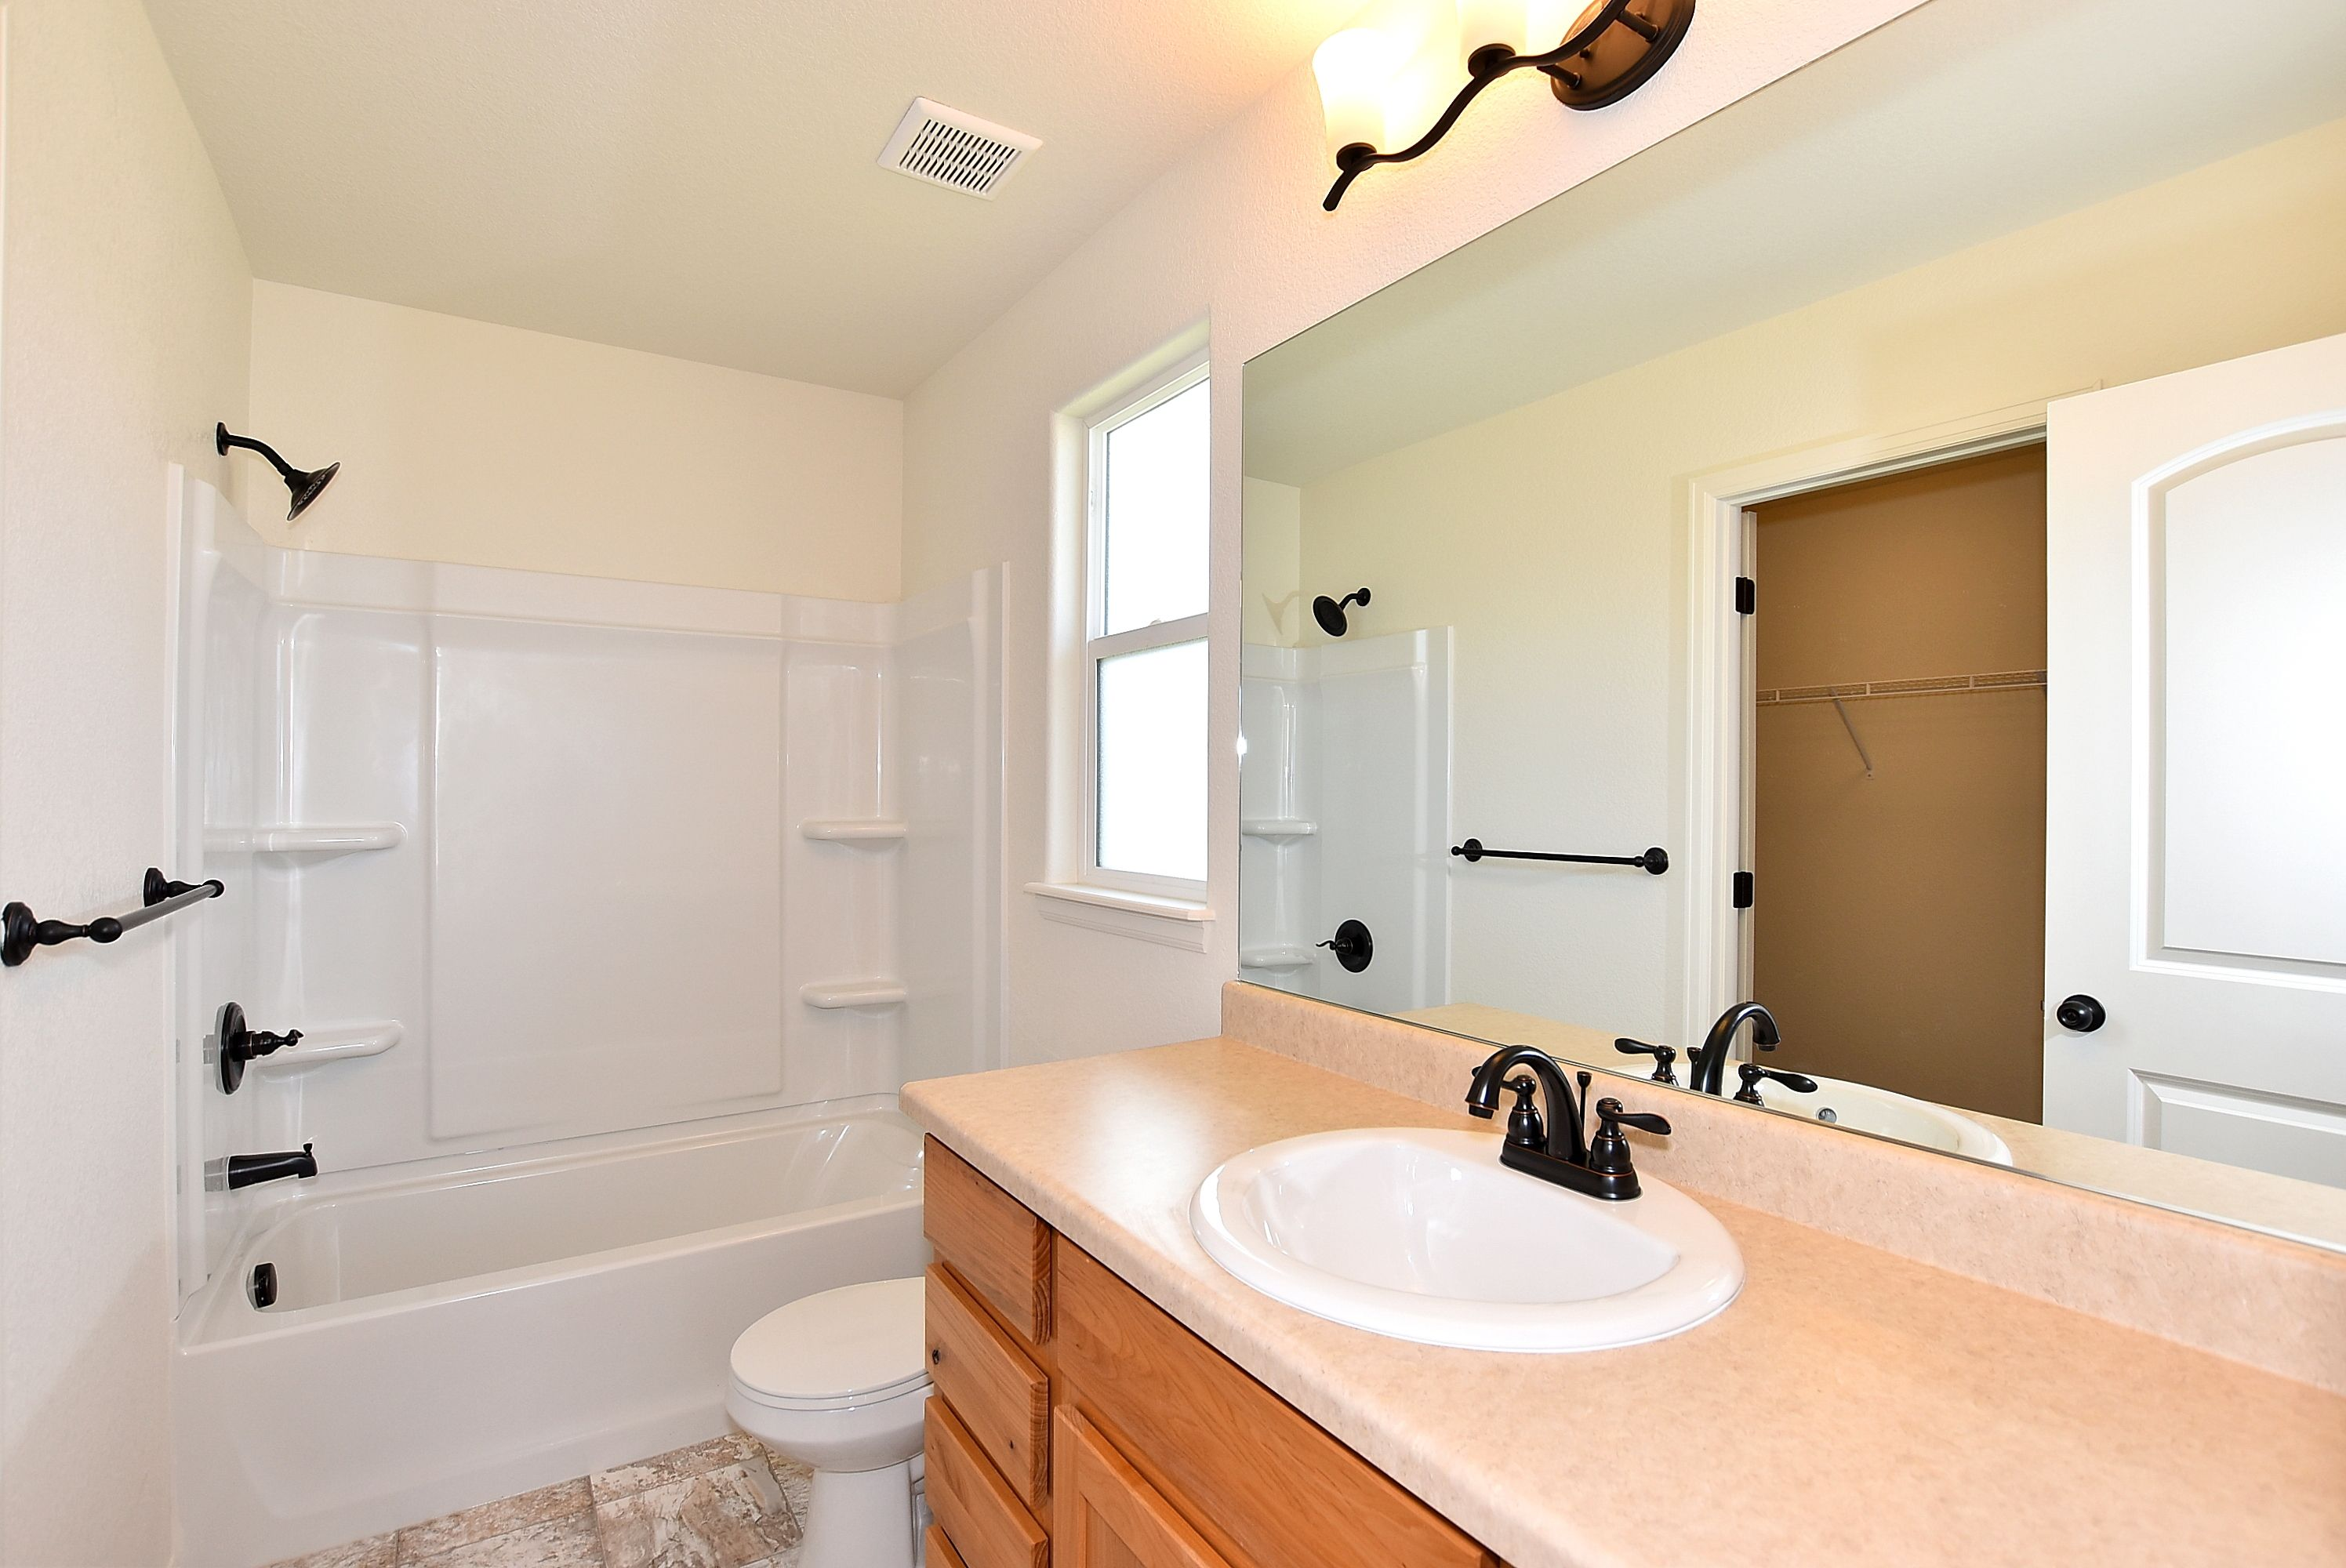 Bathroom featured in the Arizona By Journey Homes in Greeley, CO